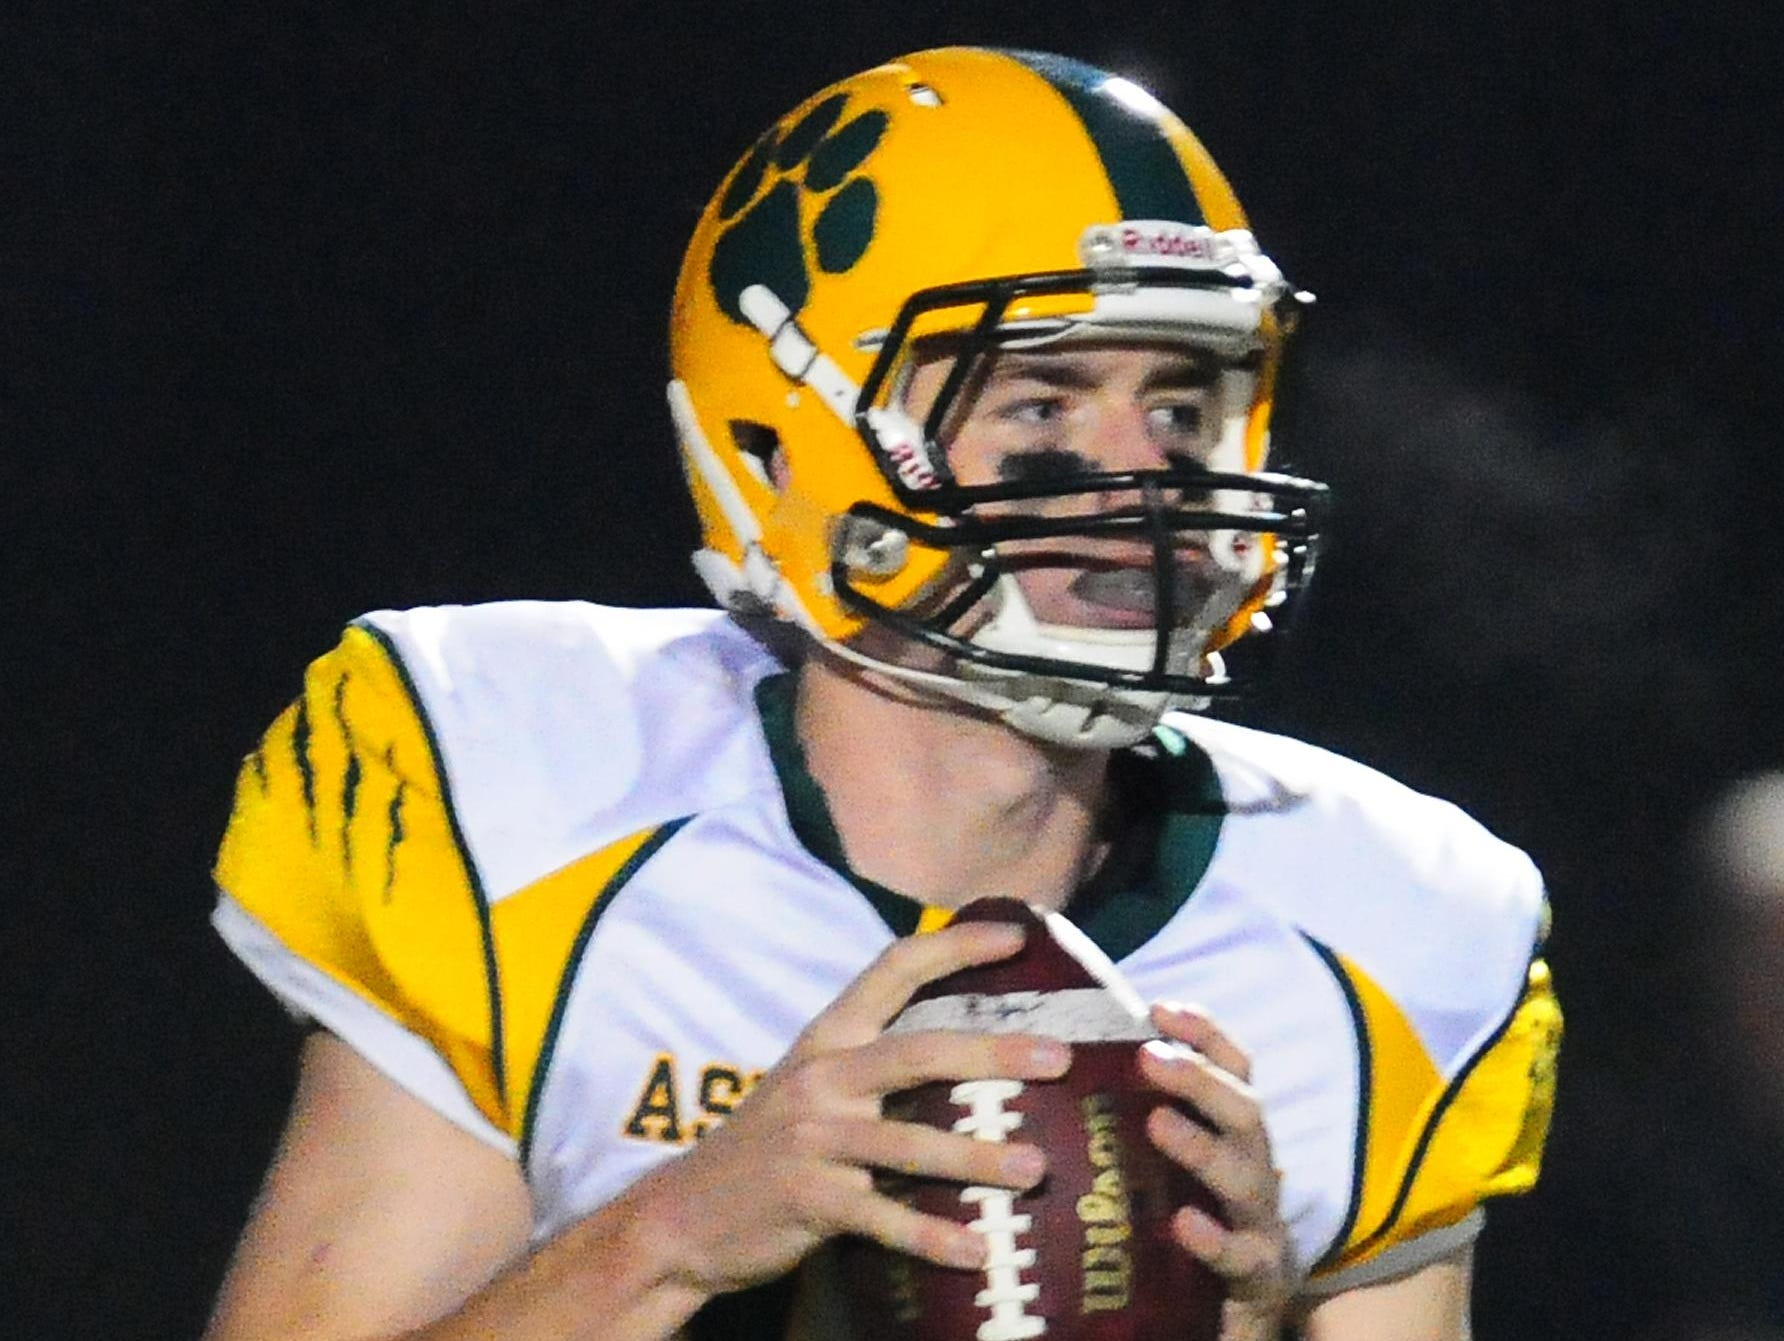 Ashwaubenon's James Morgan will be a freshman at Bowling Green this season. He is the area's first NCAA Division I scholarship quarterback since the 1980s.